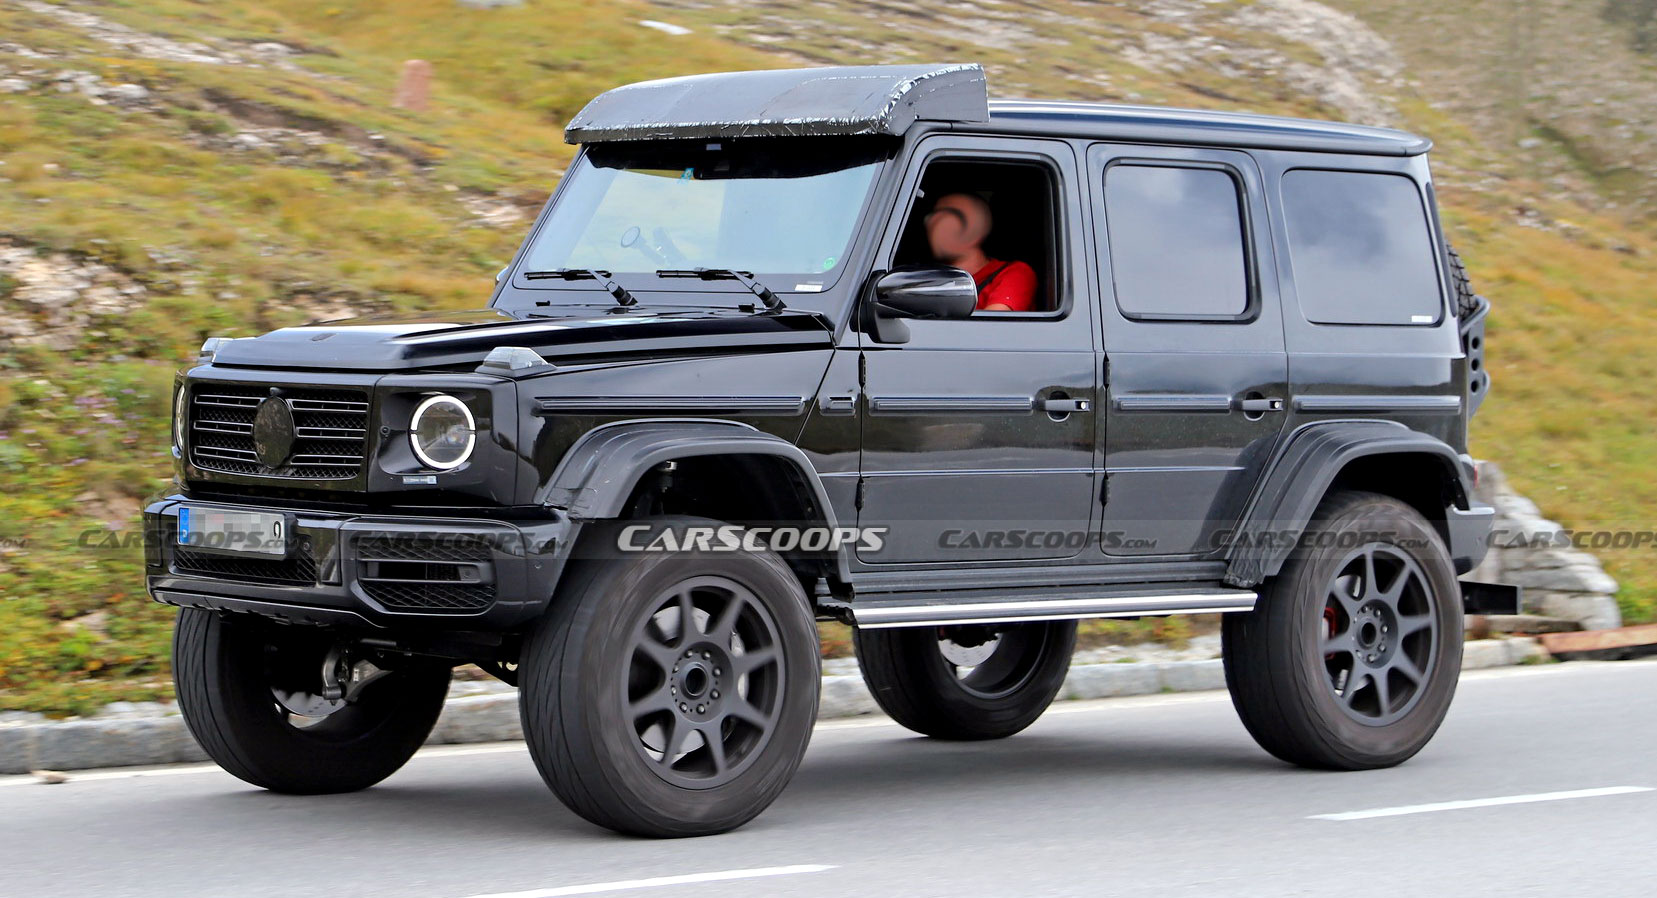 2021 Mercedes Amg G Class 4x4 Spied Undisguised Looks Every Bit As Wild As The Original Carscoops